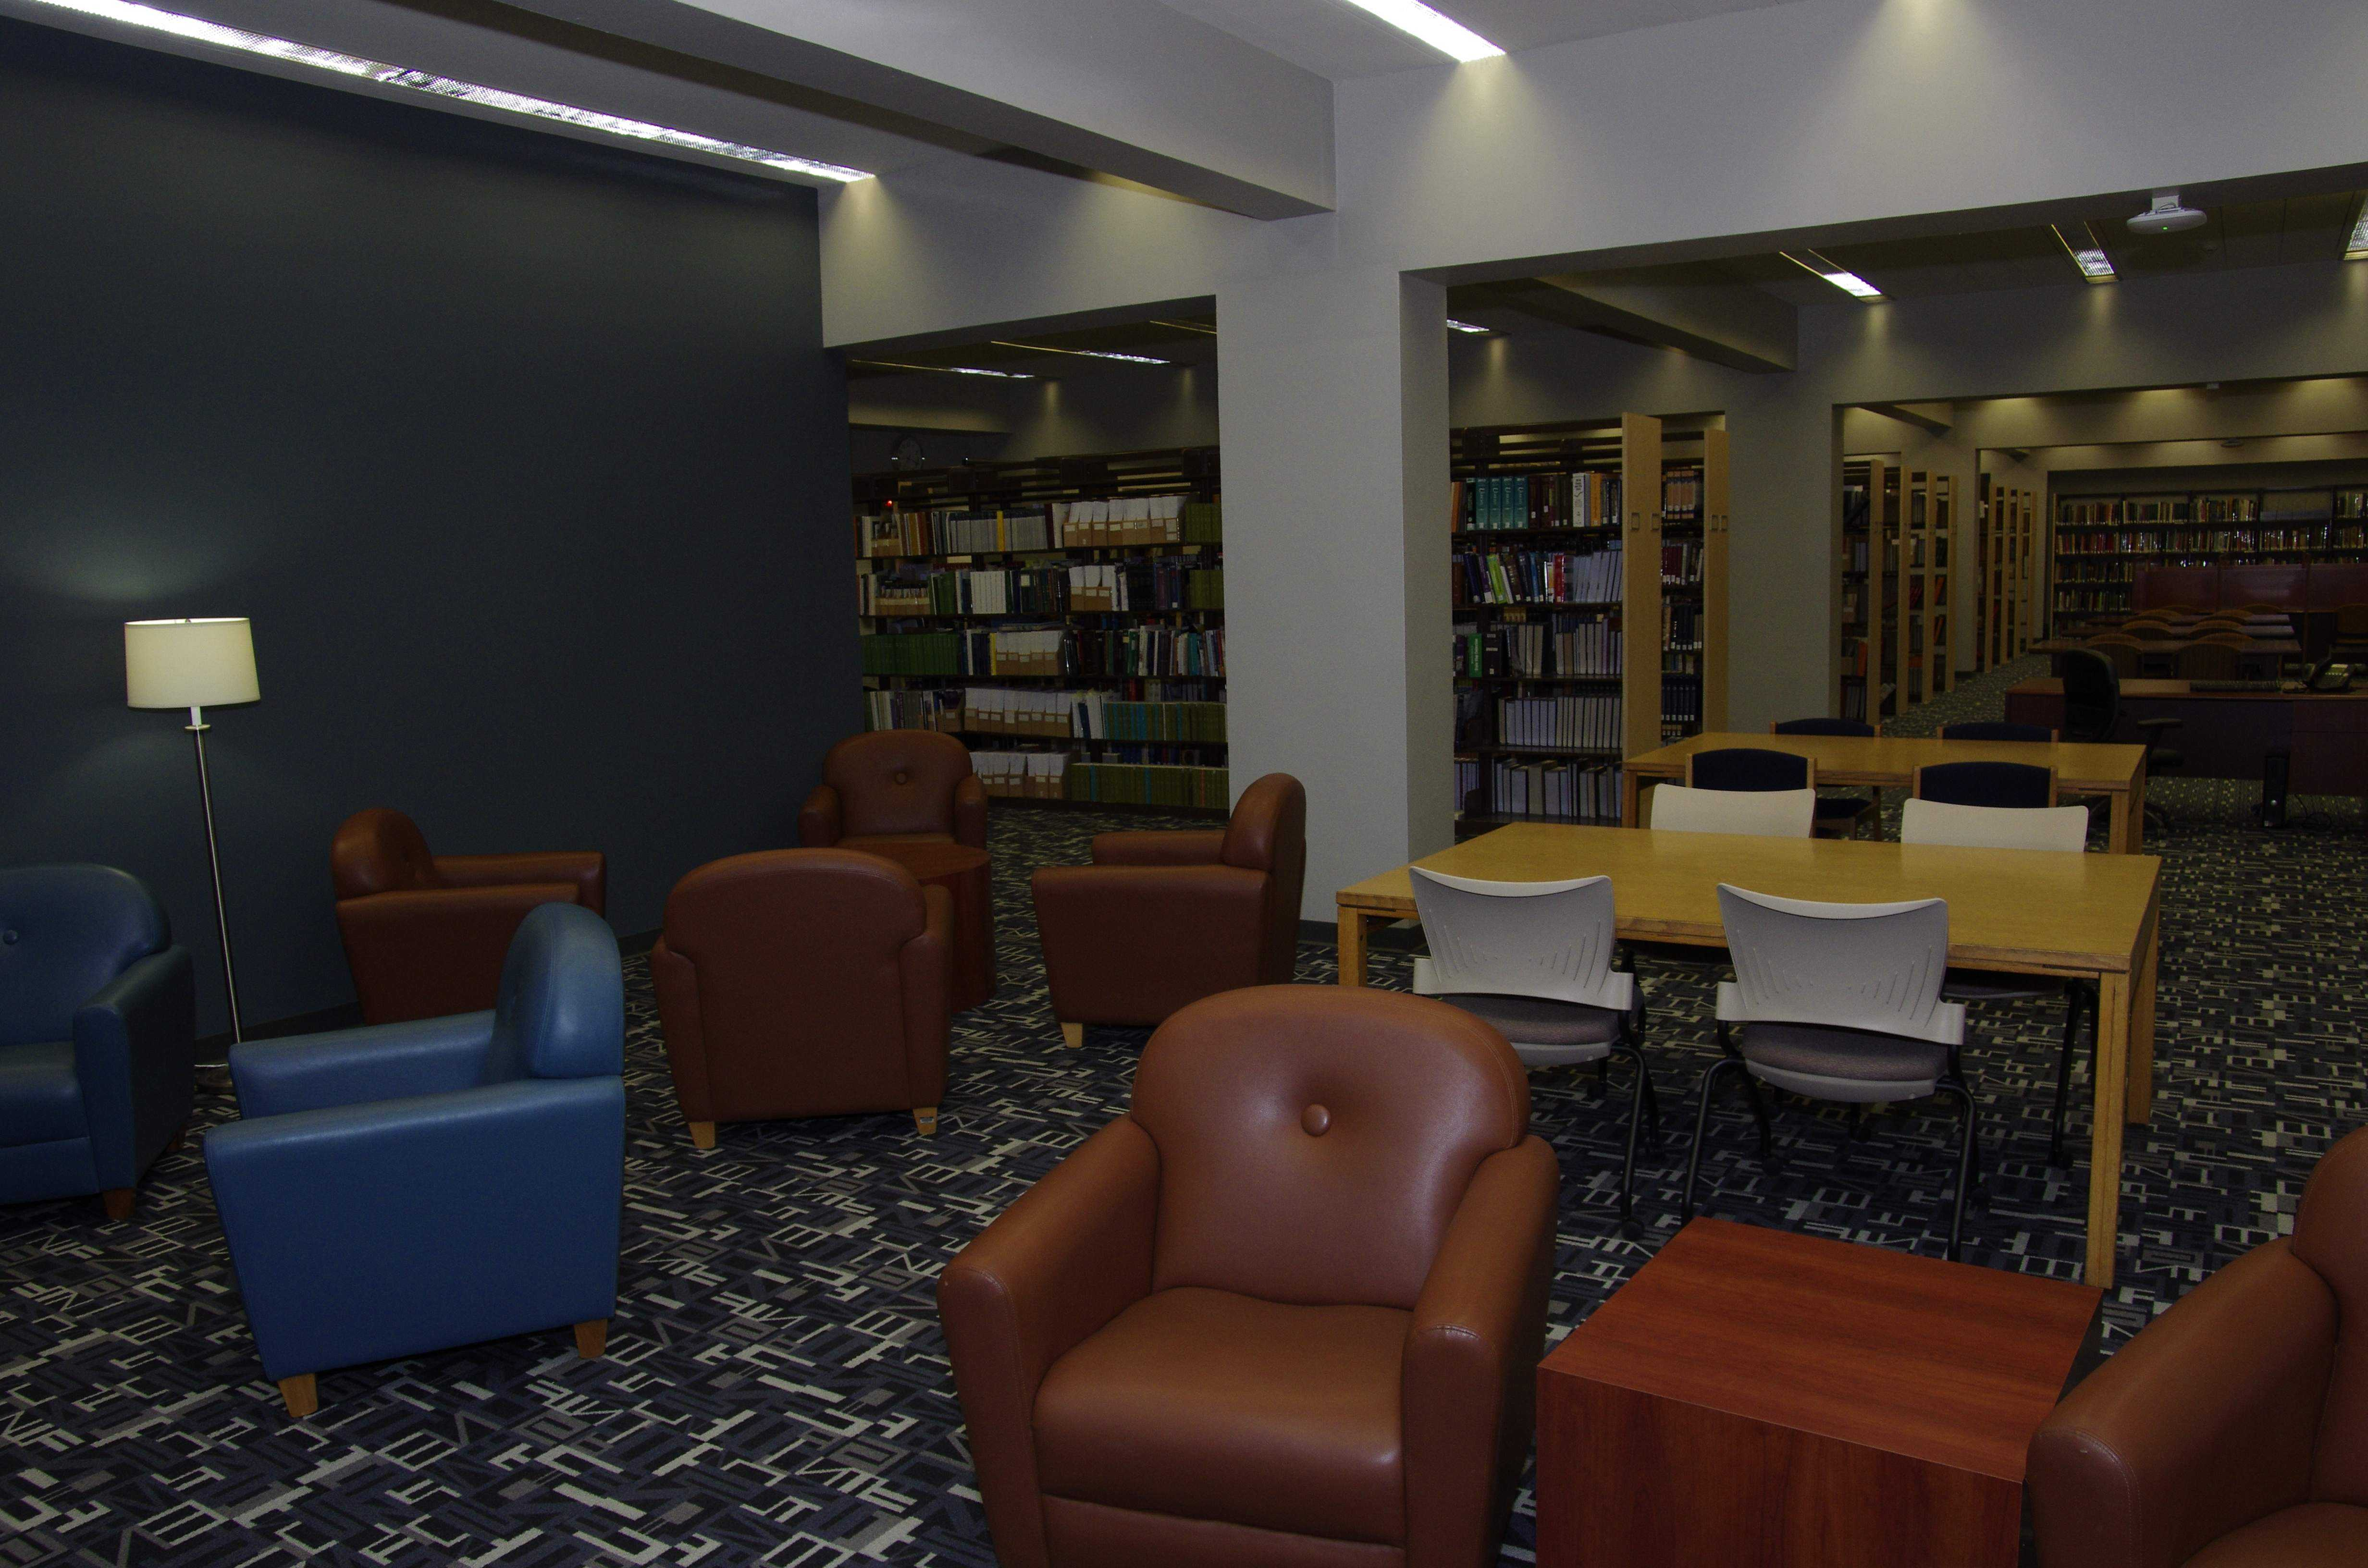 The library underwent a complete renovation over winter break to make it more attractive to students.